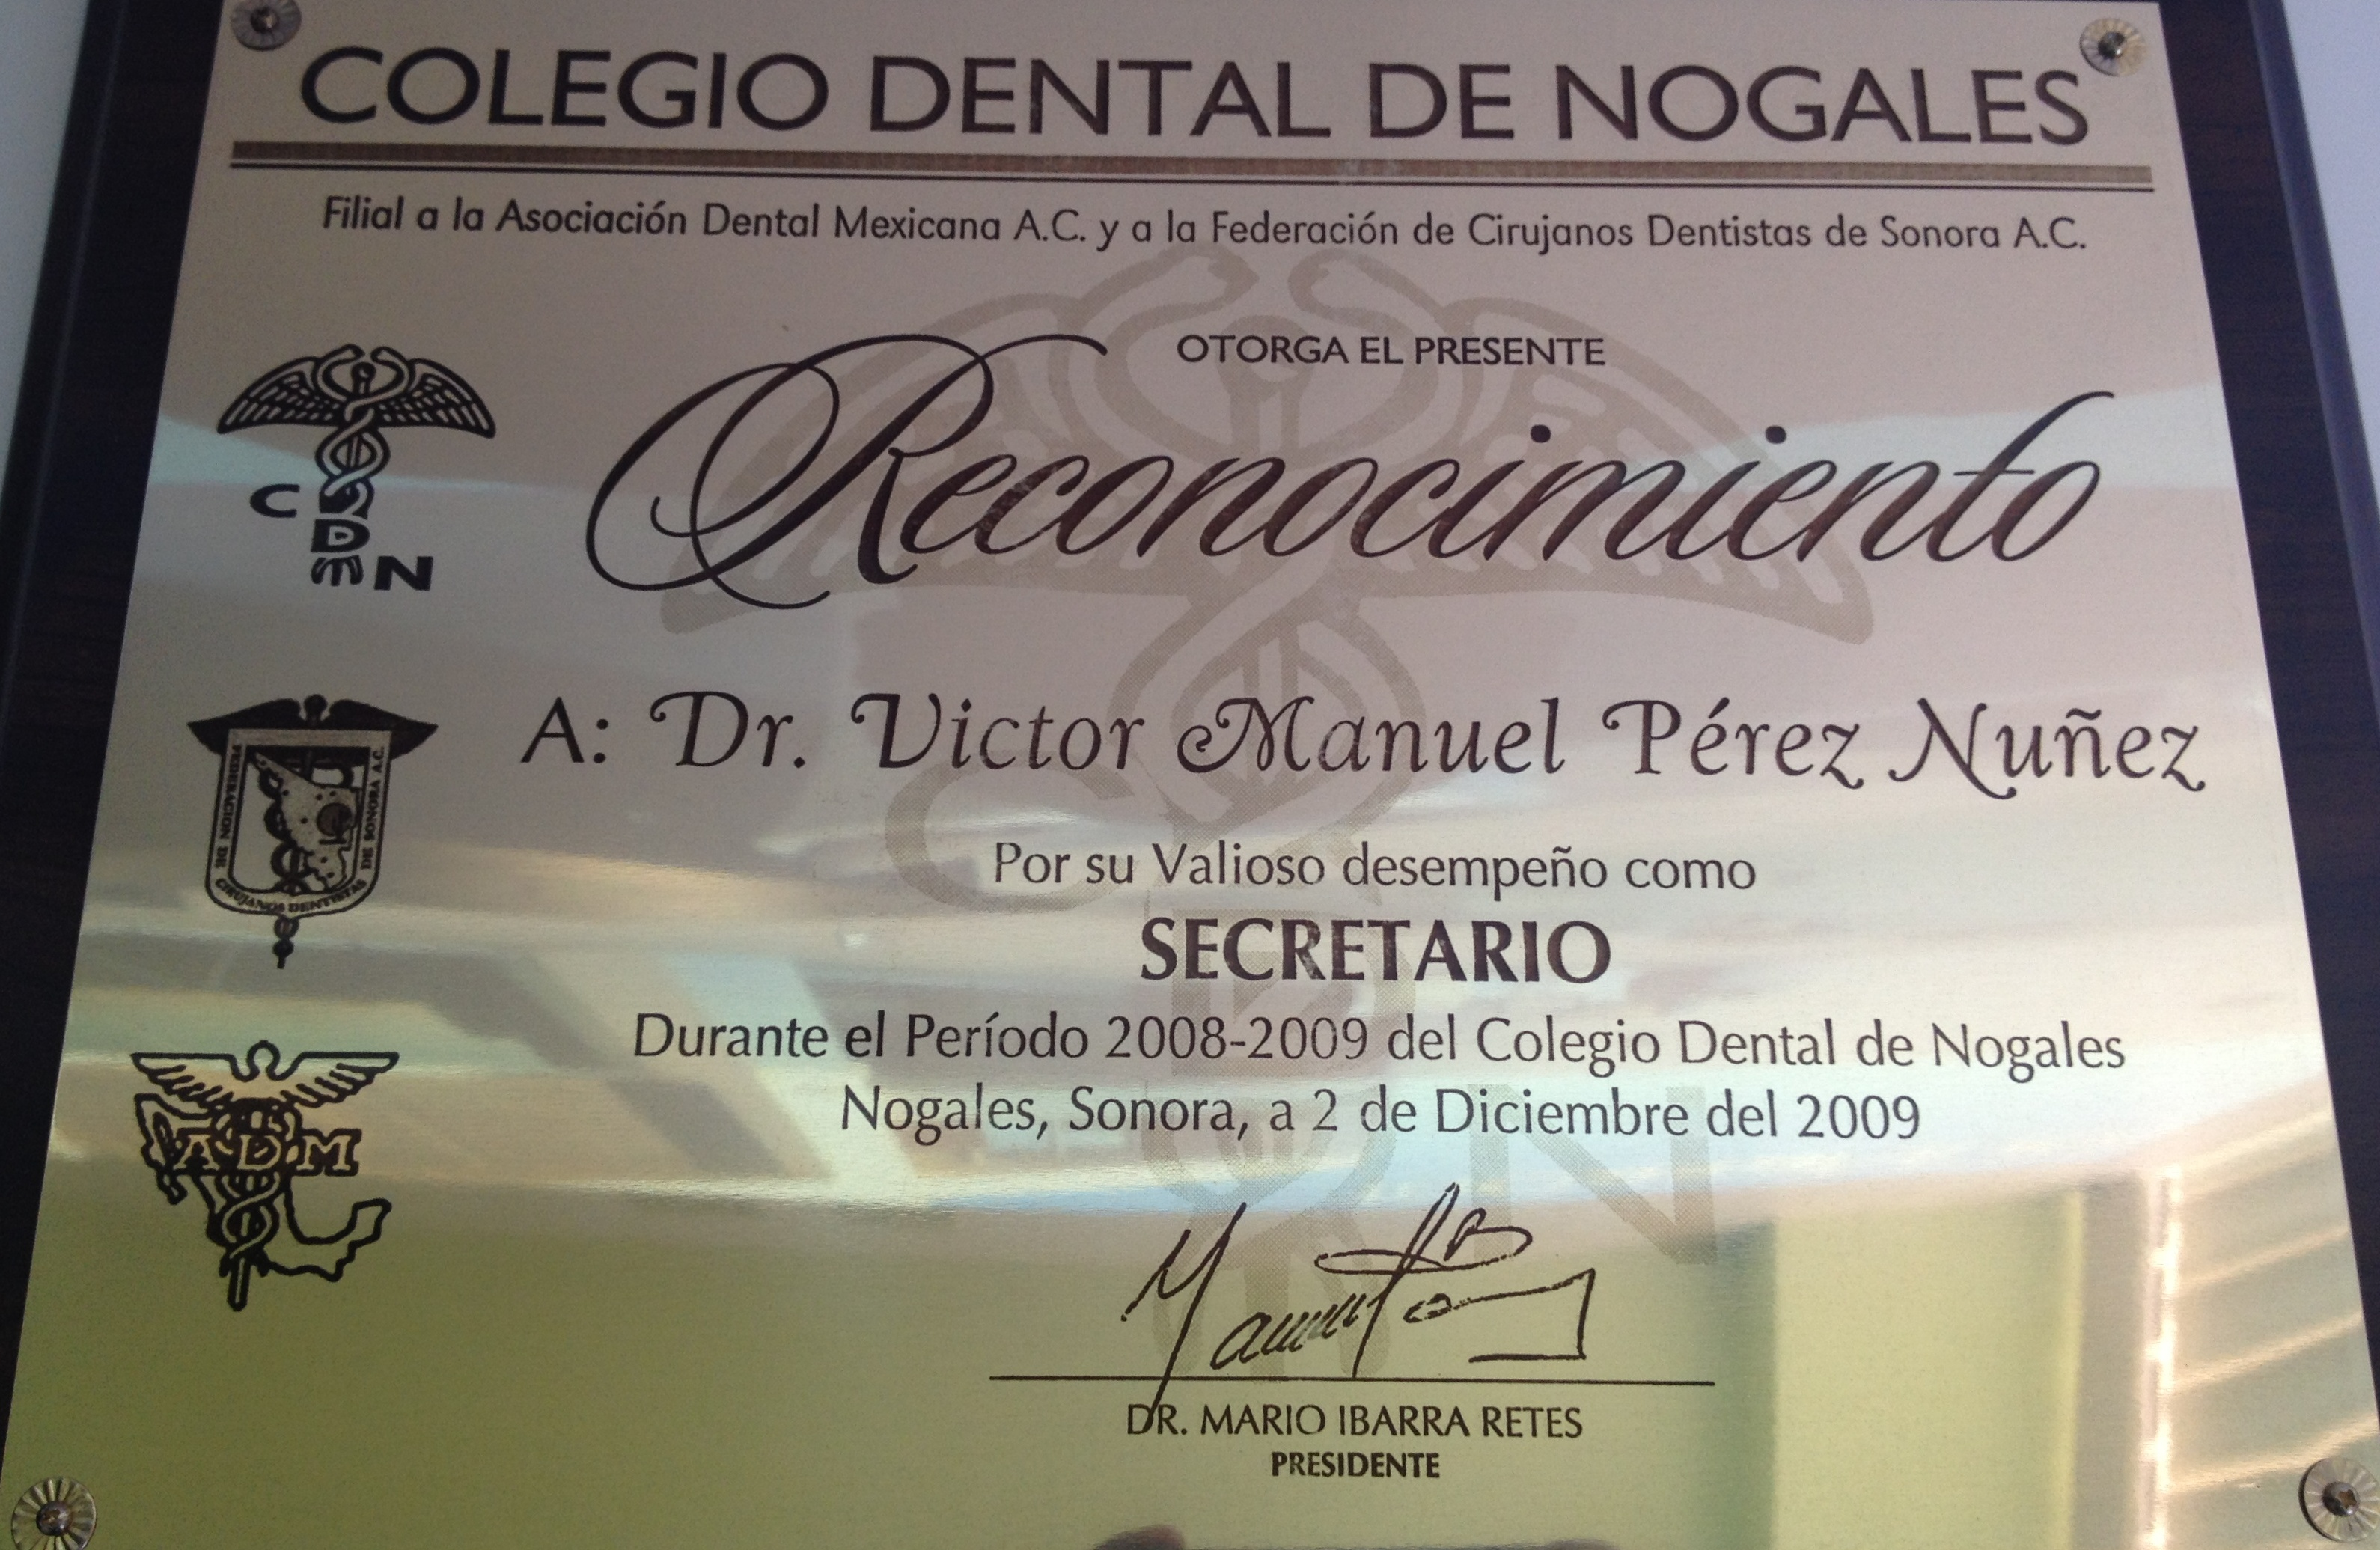 Dental Collage of Nogales Sonora